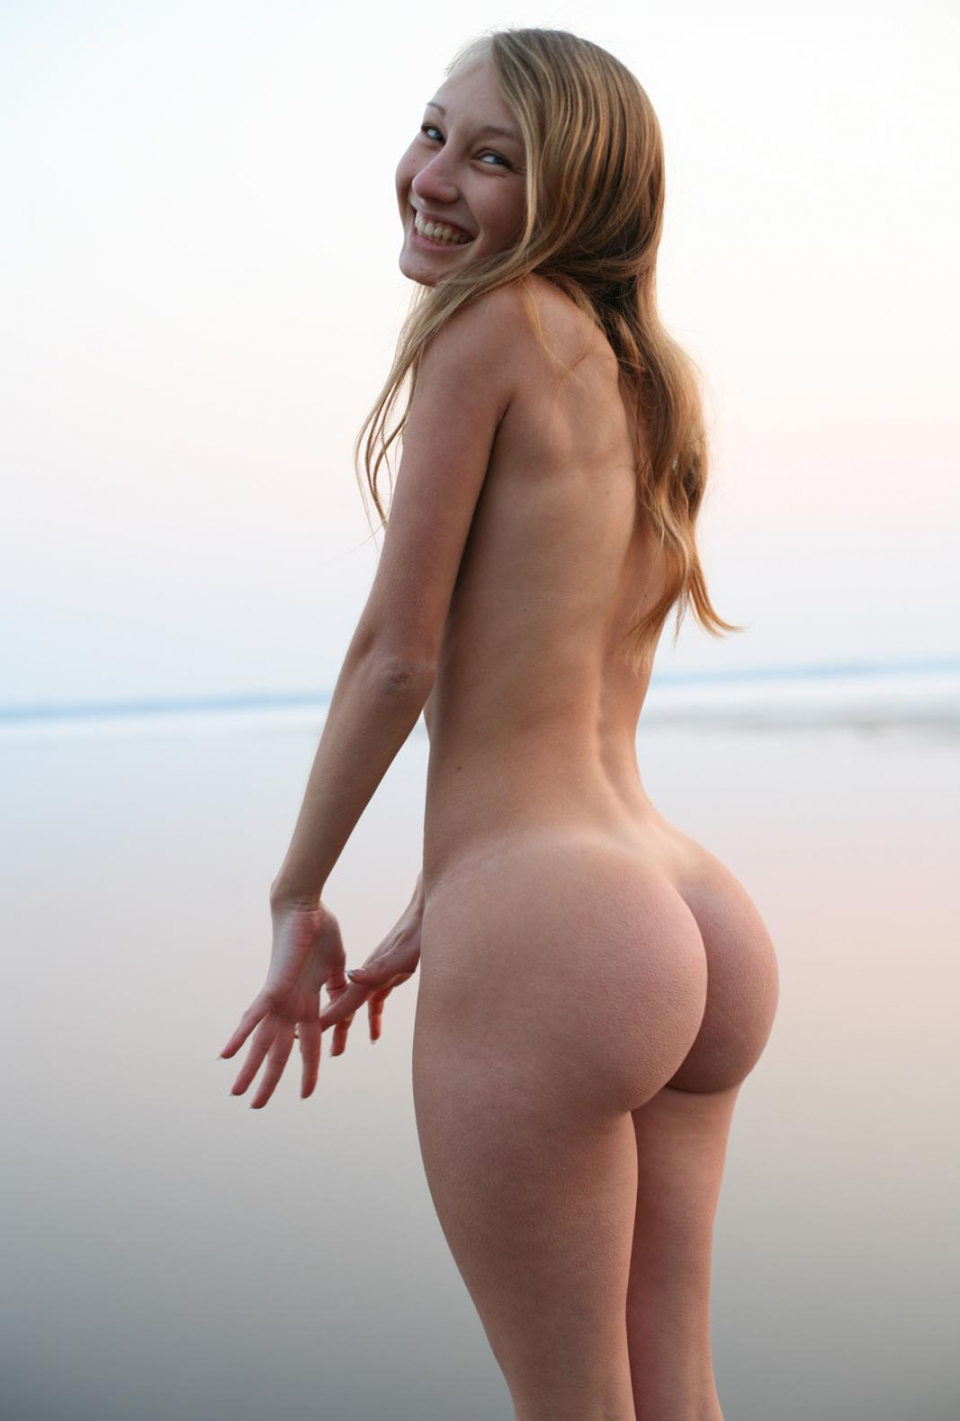 young bubble butt nude girl